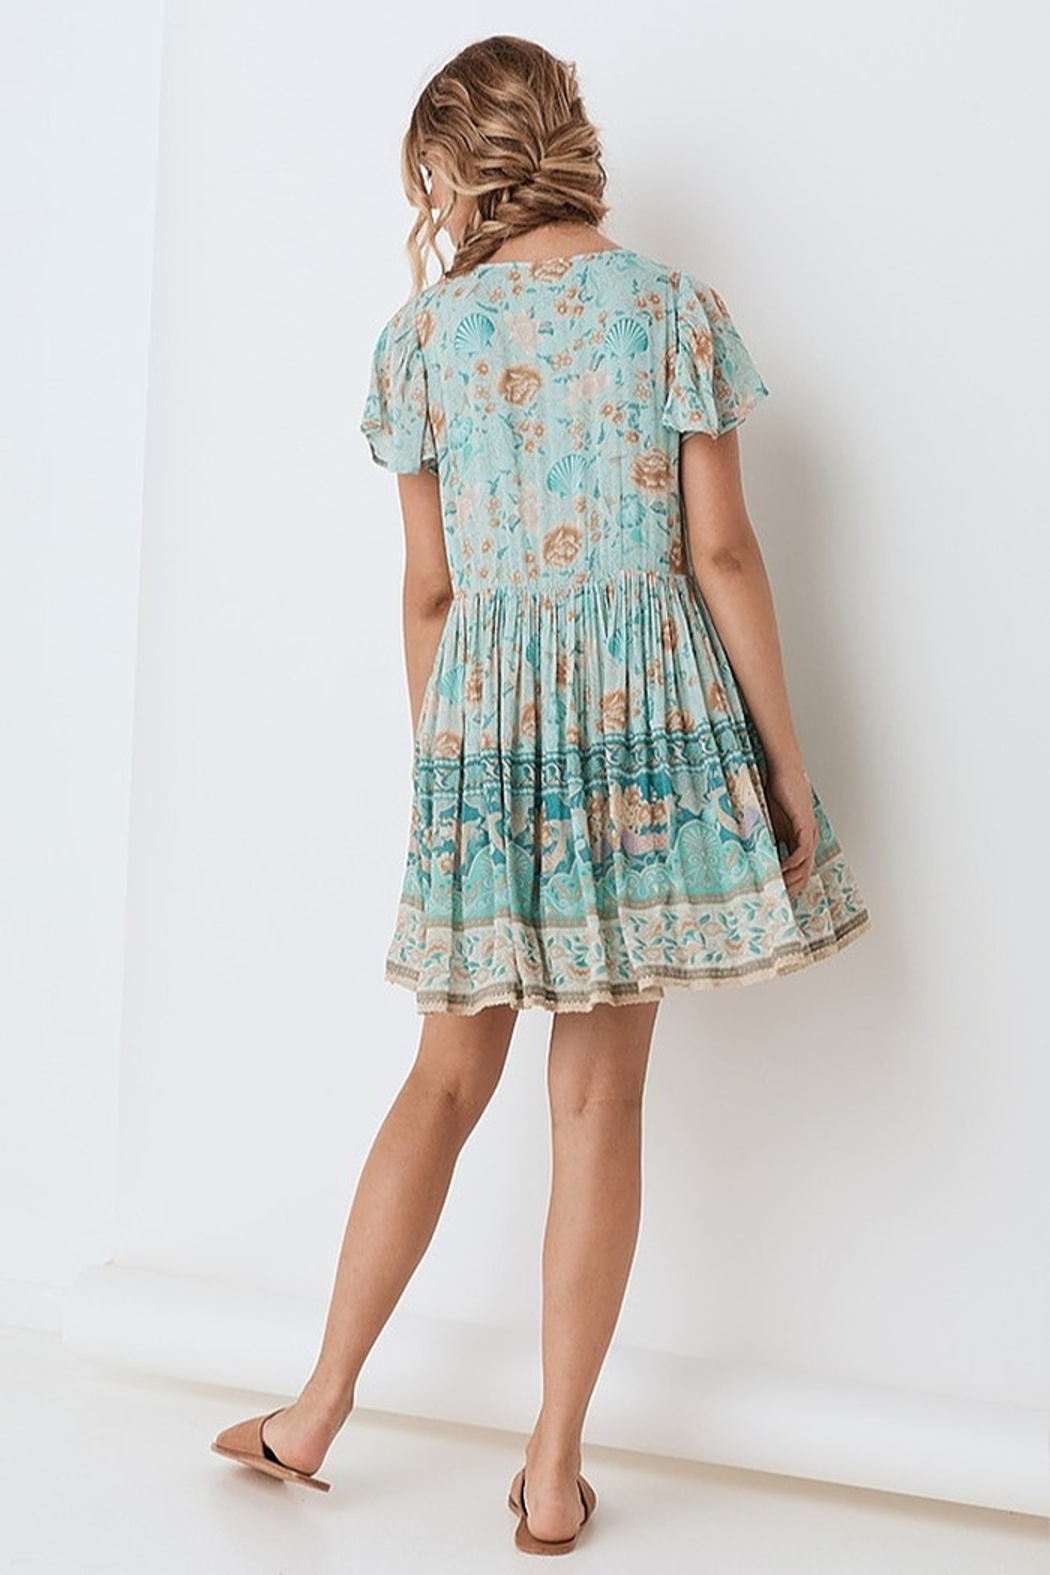 Spell & the Gypsy Collective Seashell Mini Dress - Seafoam - Back Cropped Image